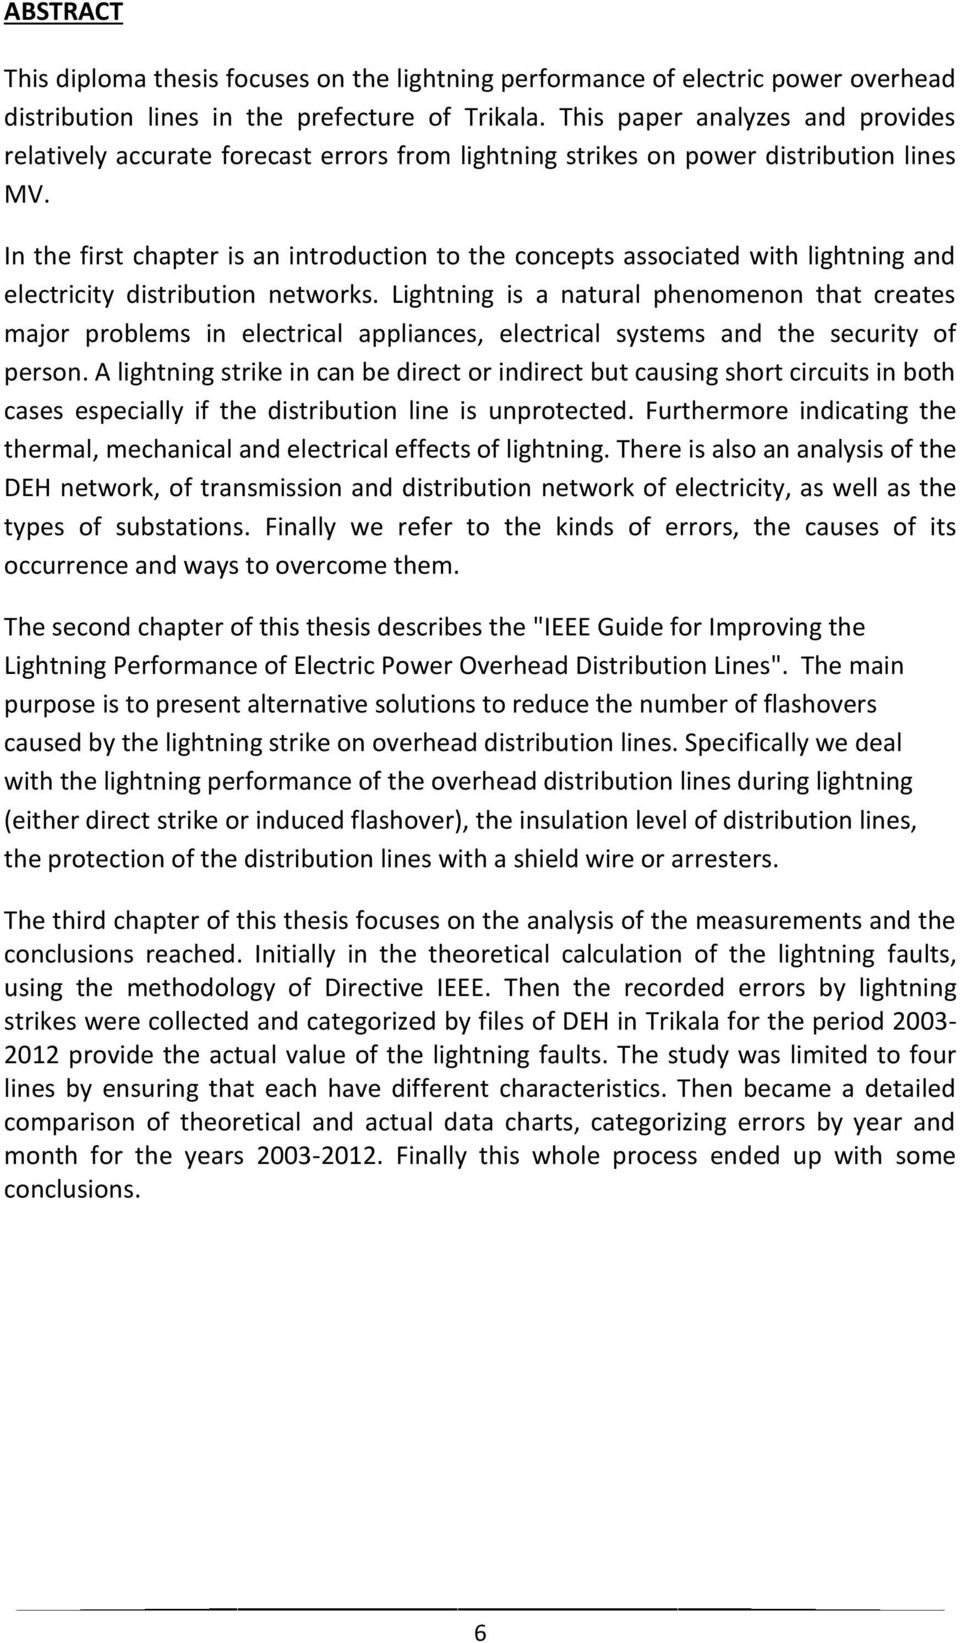 In the first chapter is an introduction to the concepts associated with lightning and electricity distribution networks.